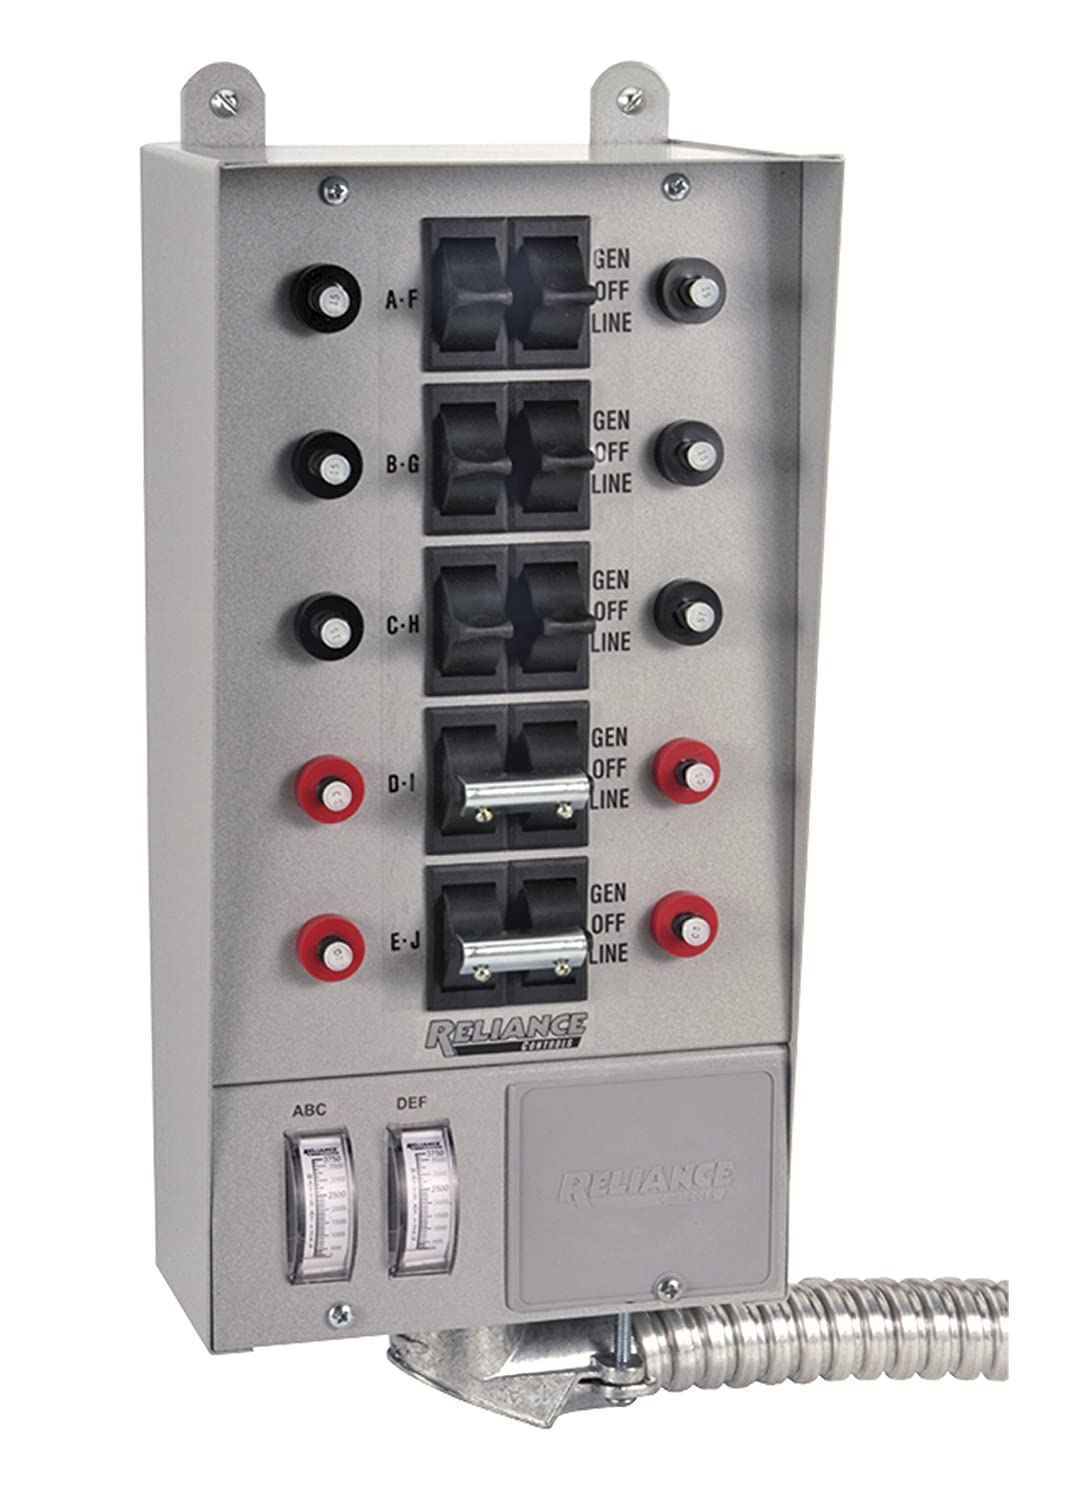 81TLmcB5vfL._SL1500_ outdoor generator transfer switches amazon com  at aneh.co